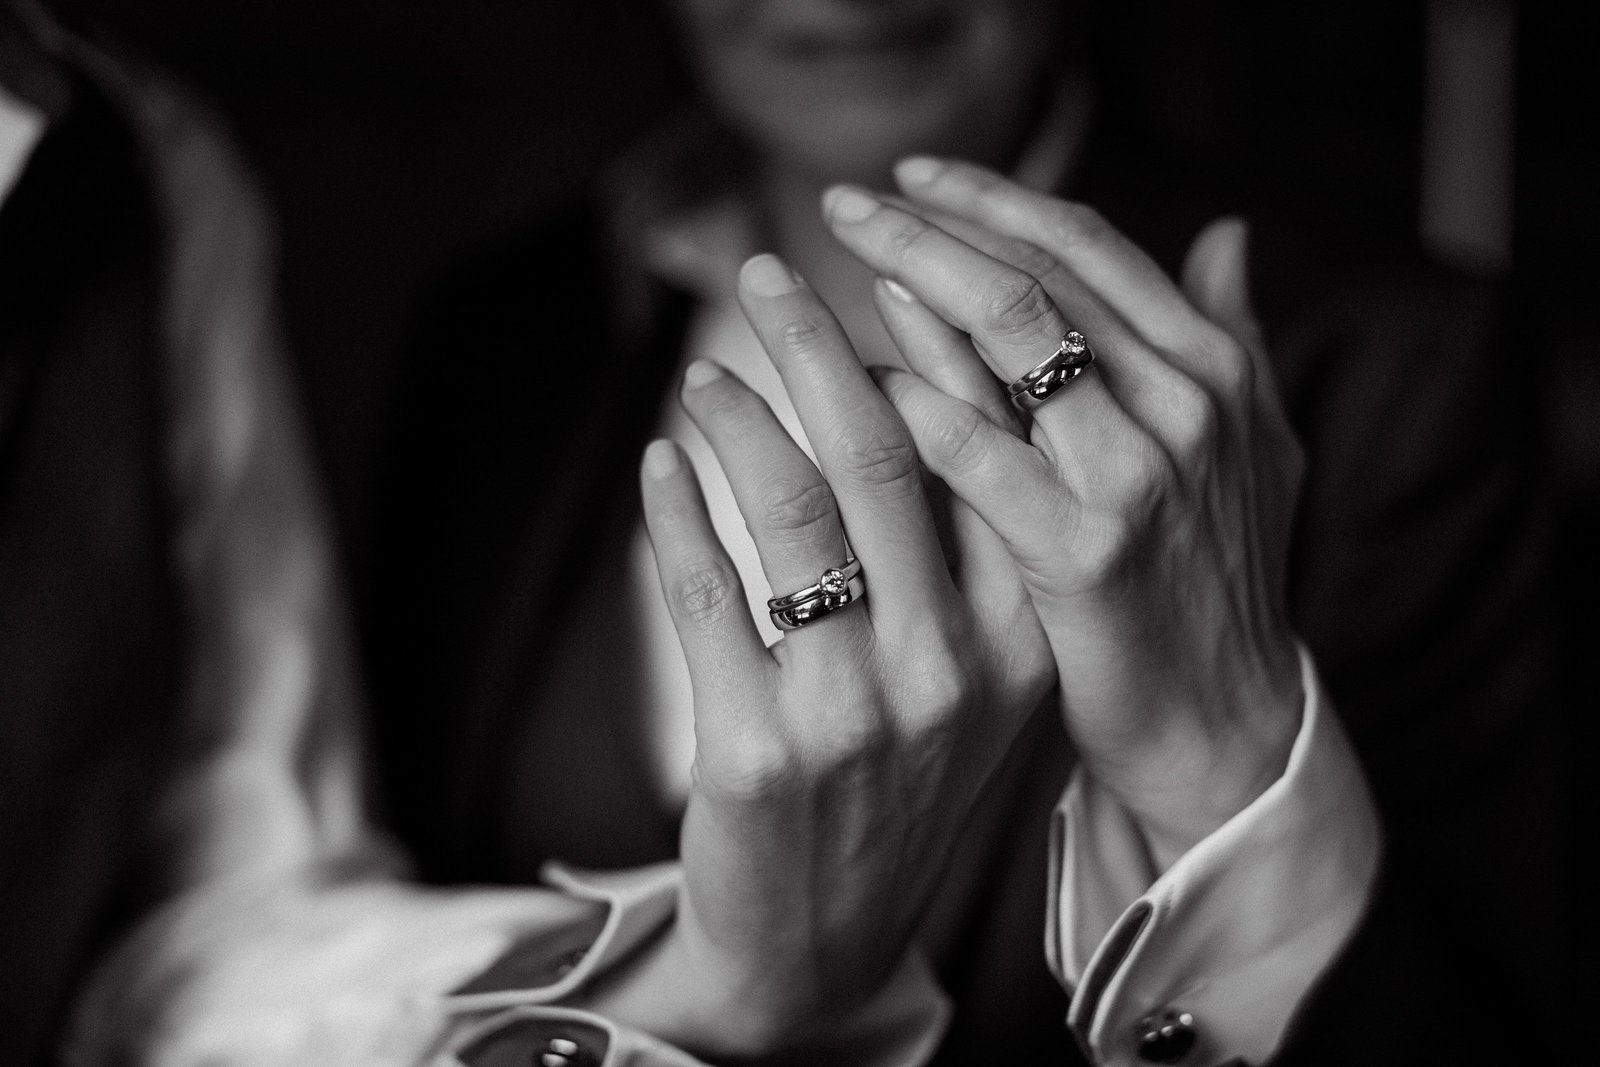 black and white gay wedding  photo captured by Adorlee Photography - Two beautifully feminine hands show these stunning engagement rings and wedding bands at this same sex wedding in Chichester, West Sussex